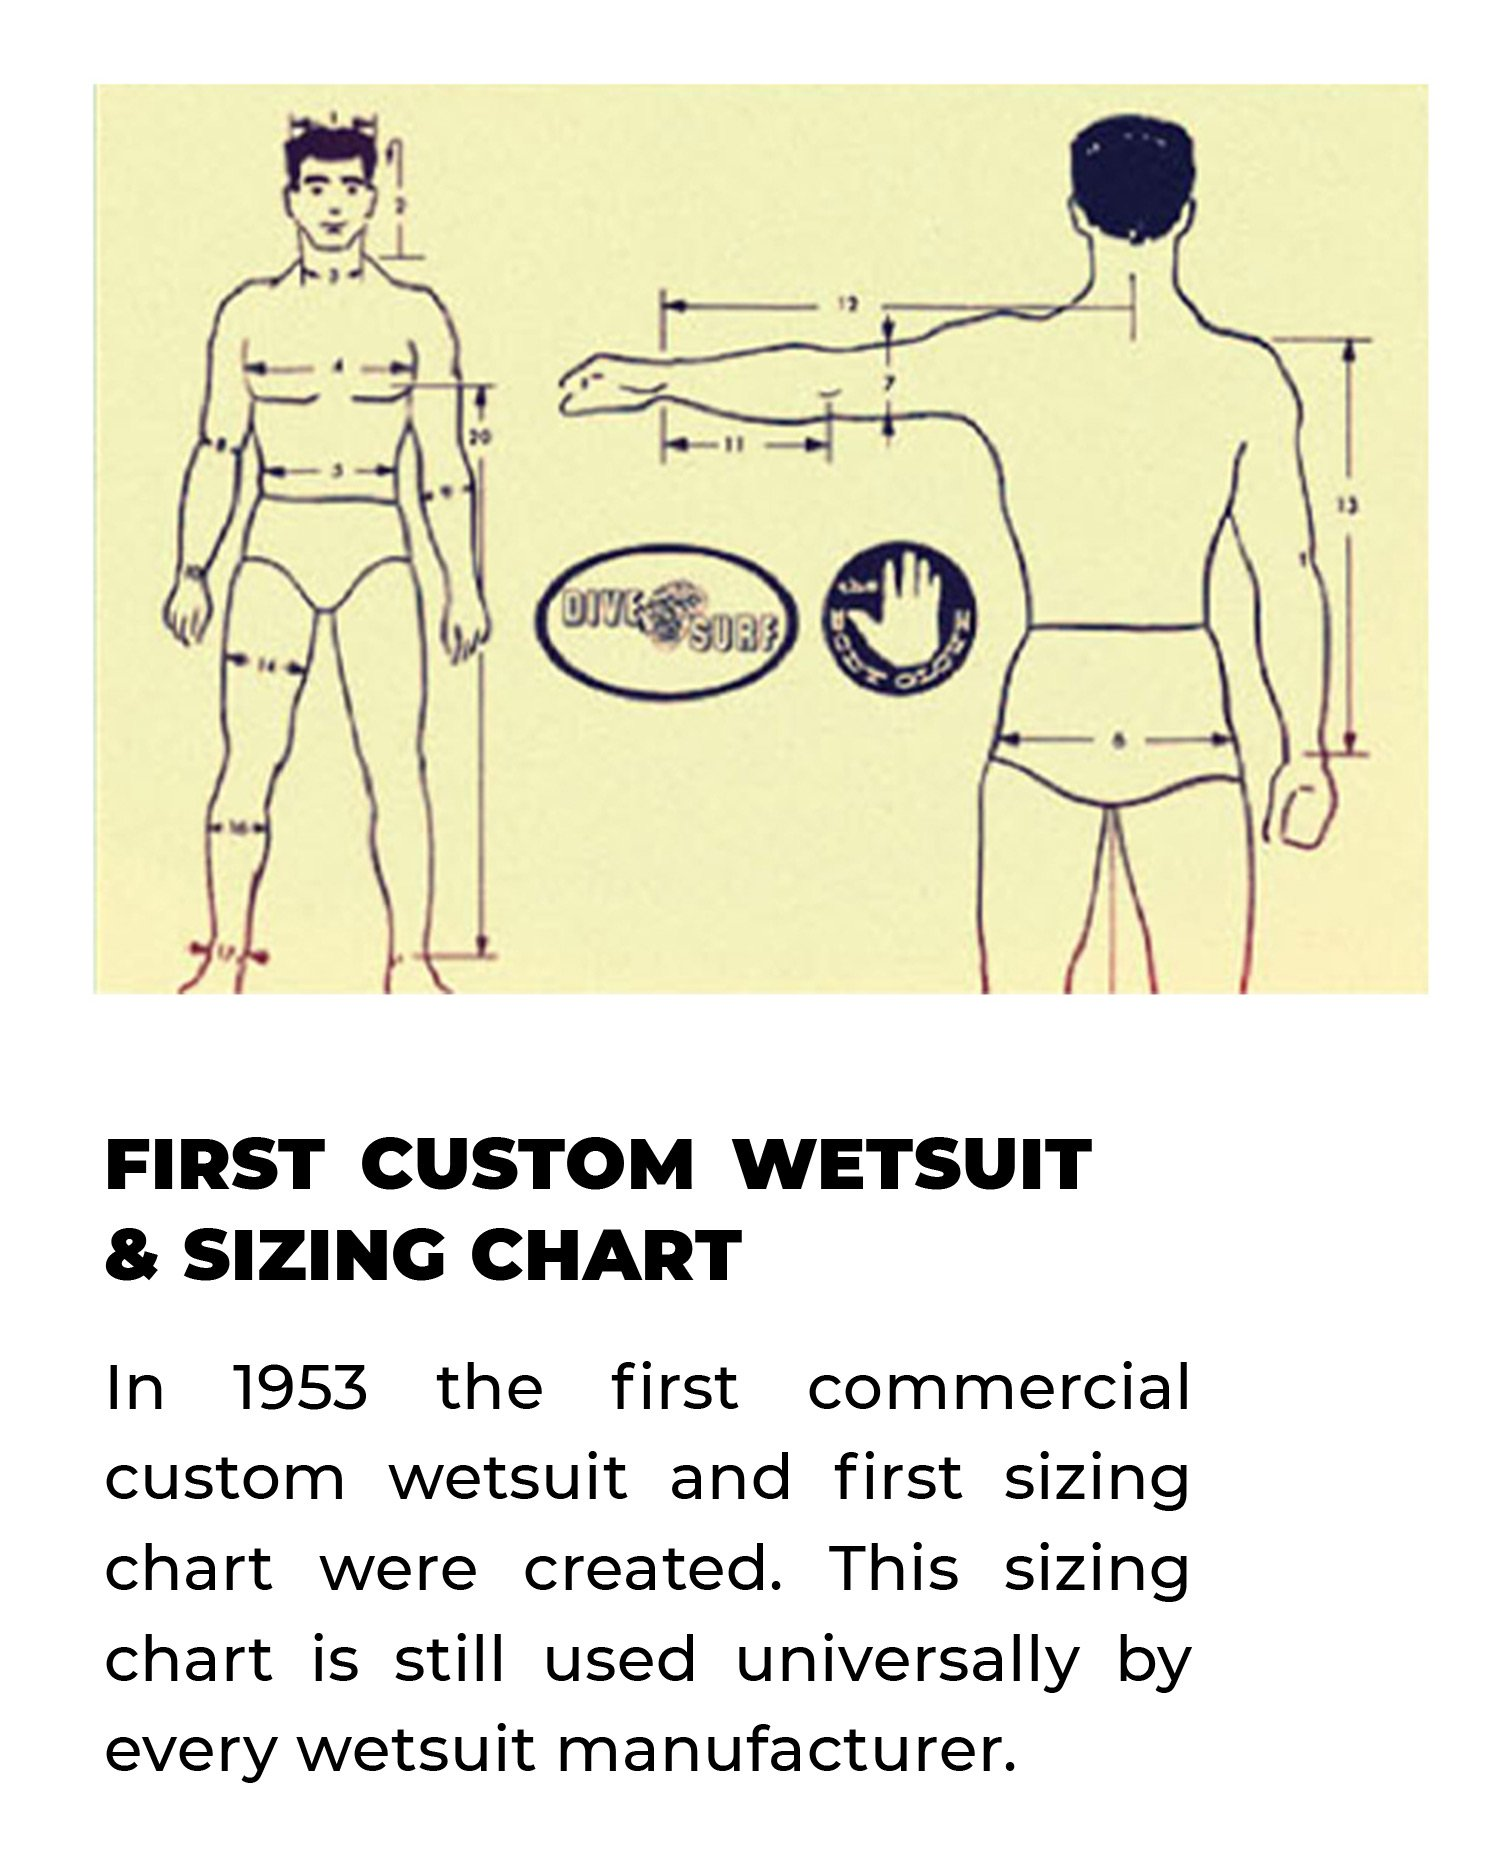 First Custom Wetsuit & Sizing Chart | In 1953 the first commercial custom wetsuit and first sizing chart were created. This sizing chart is still used universally by every wetsuit manufacturer.